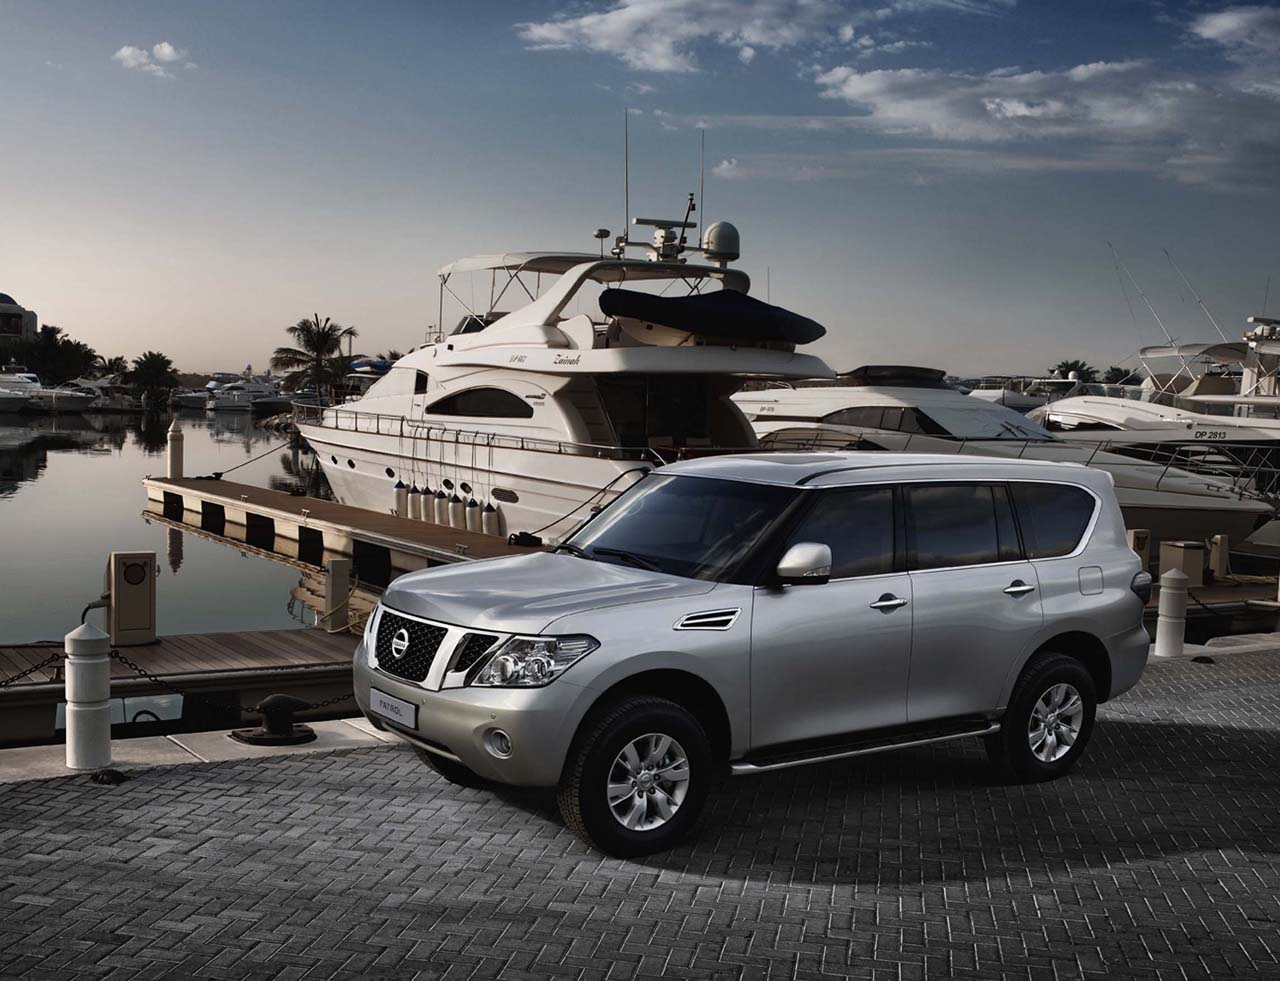 Nissan Patrol SUV Wallpaper